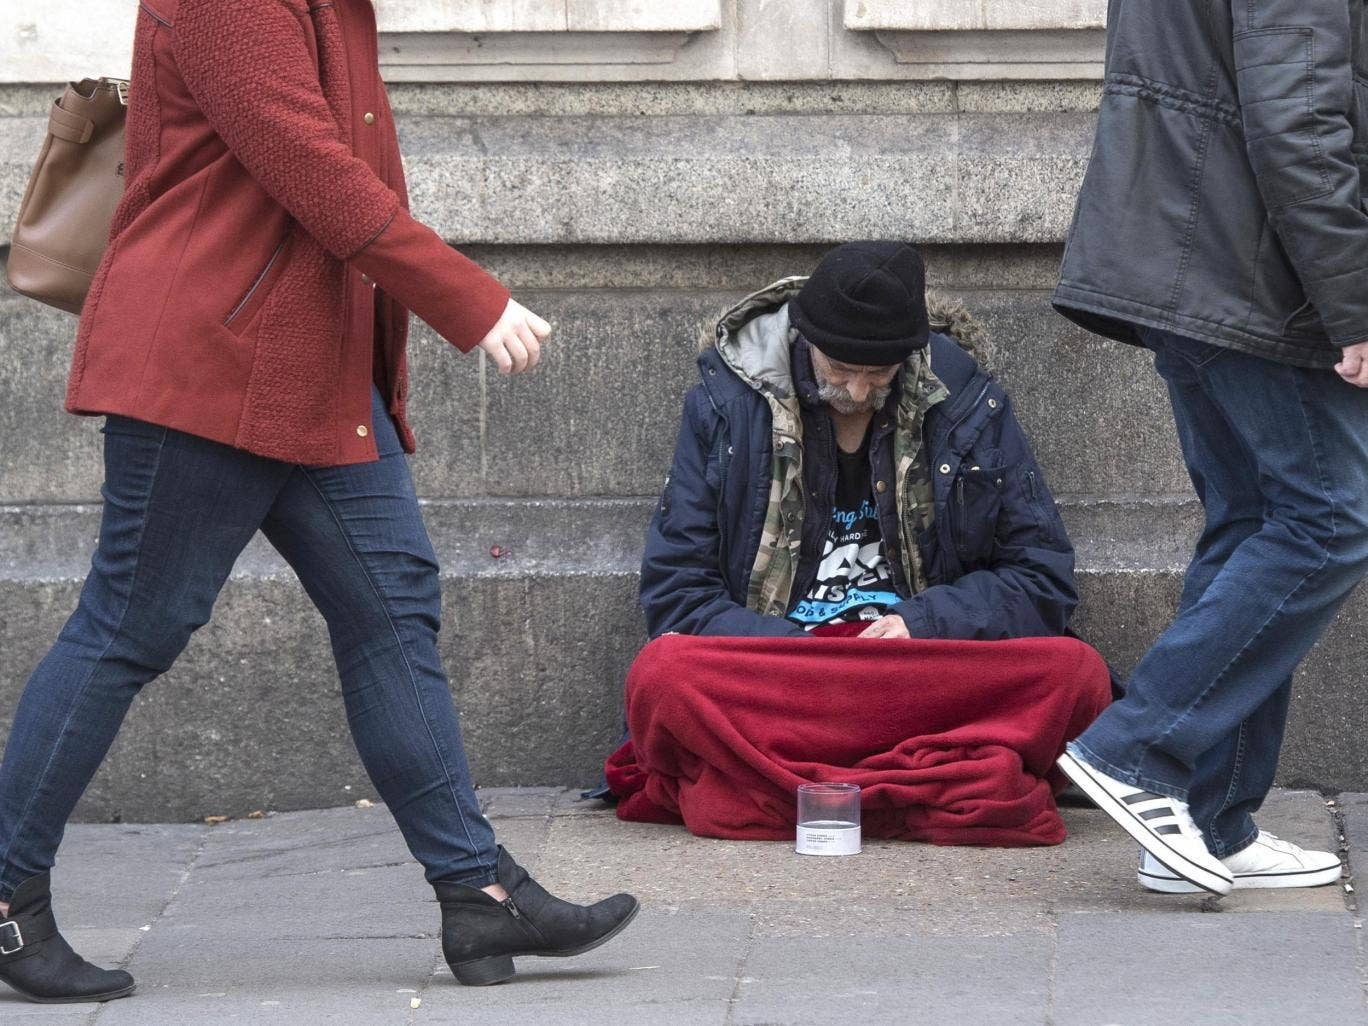 Ministry inspired by homeless people sleeping outside church